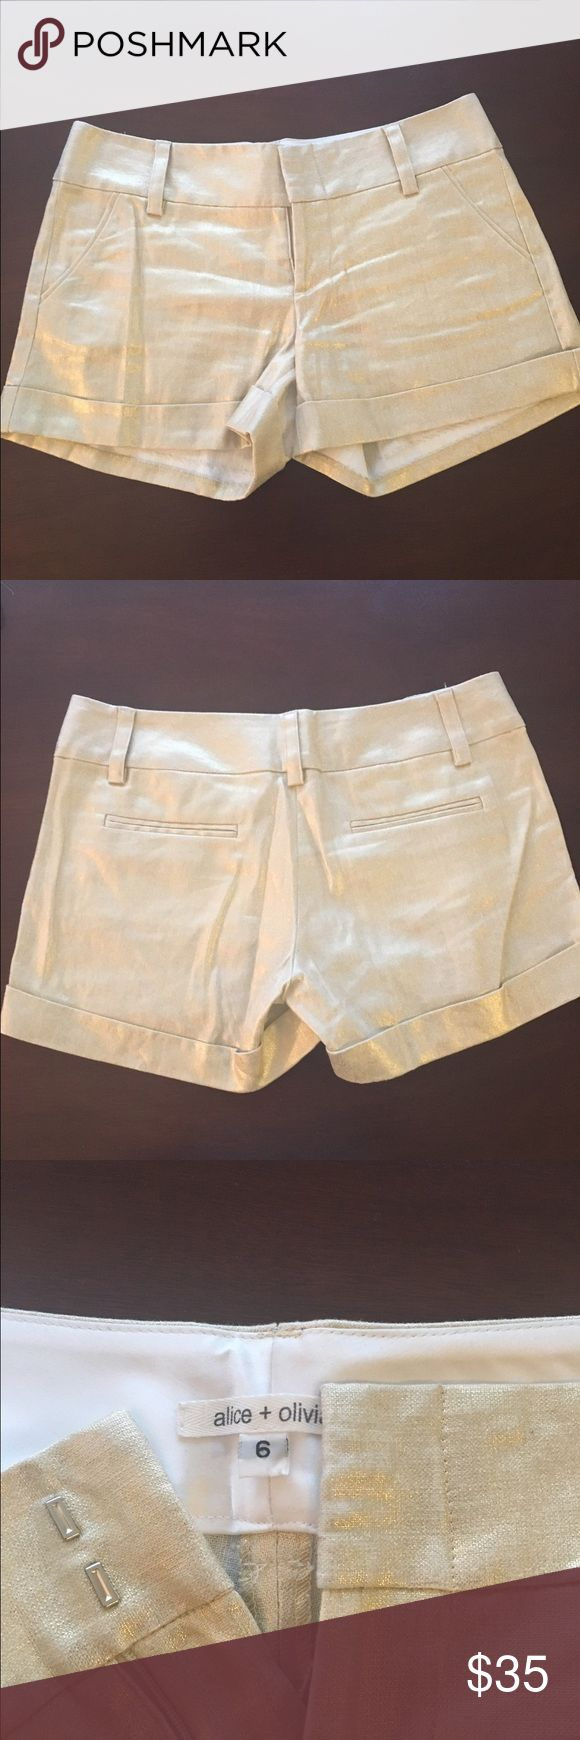 Stunning Alice and Olivia gold shorts Beautiful Alice and Olivia gold shorts. These are so flattering and such a pretty color. The gold is subtle but unique and different. You're gunna LOVE these! Alice + Olivia Shorts